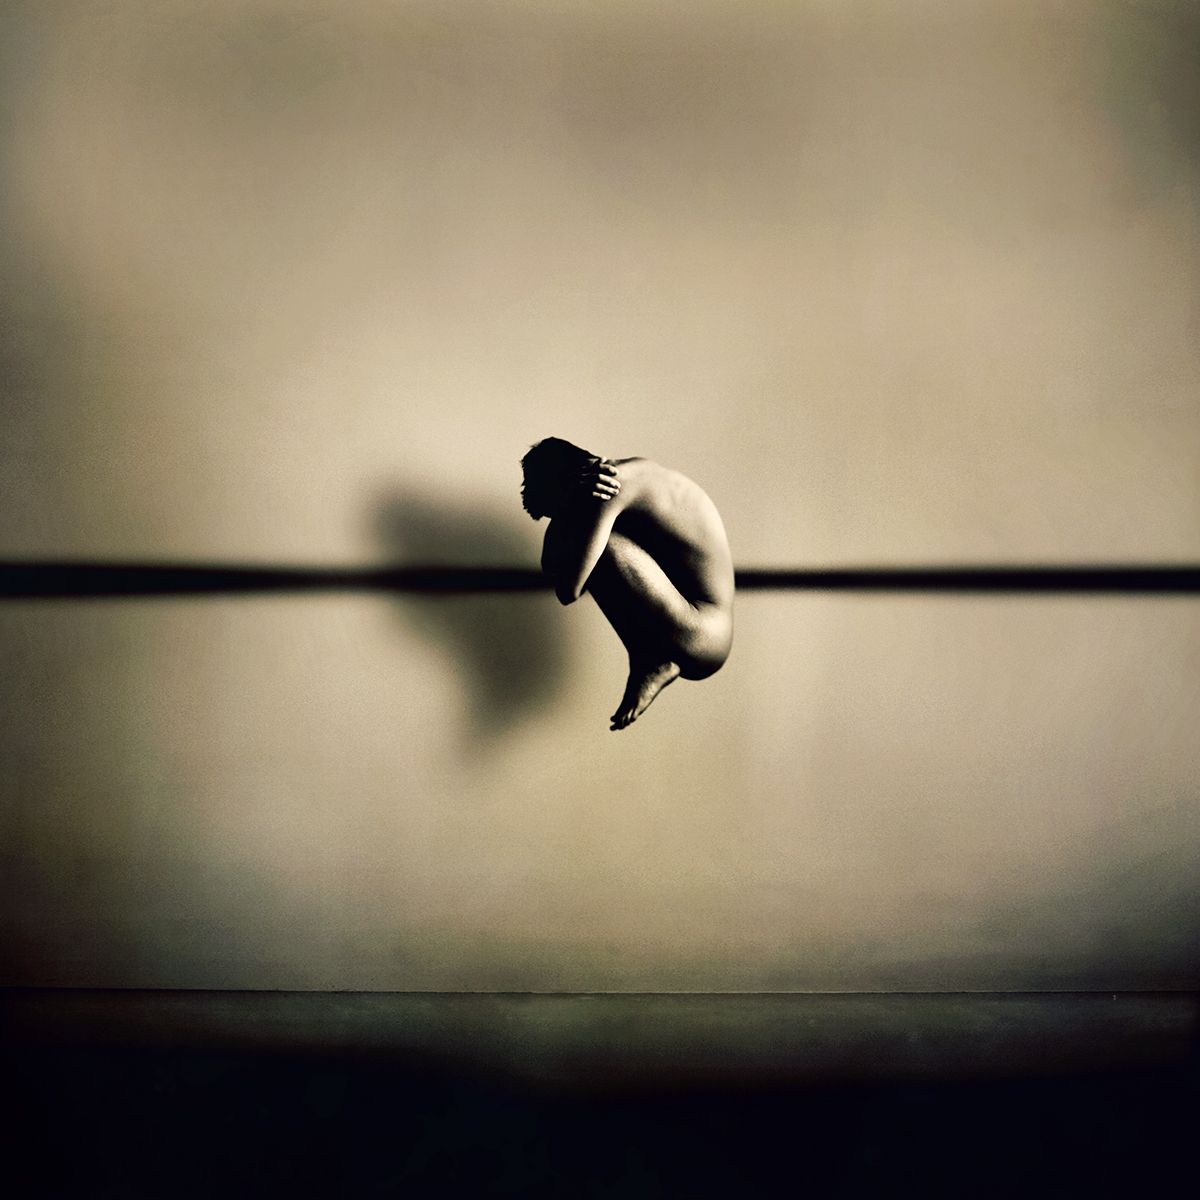 Martin Stranka, Rejected,  2009, Photograph on Archival Museum Paper, 50 x 50 cm (20 x 20 in.jpg